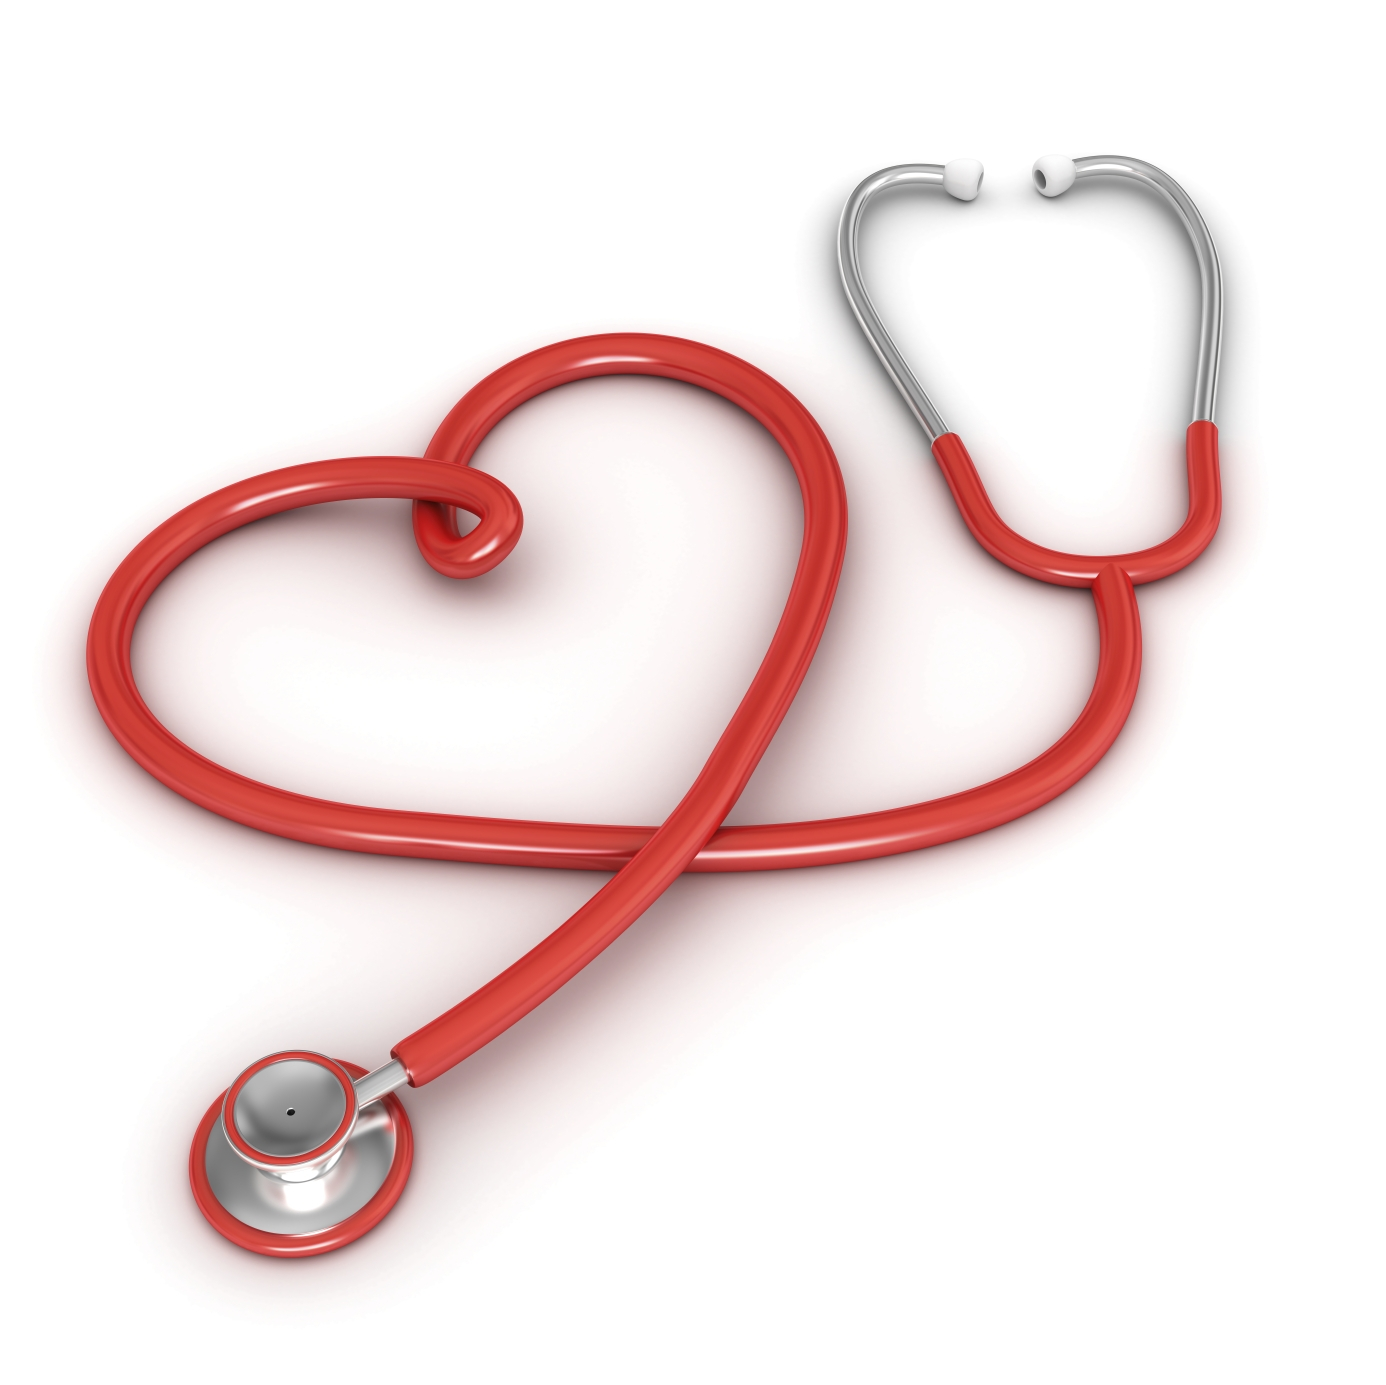 Png Best Heart Stethoscope Clipart image #27522